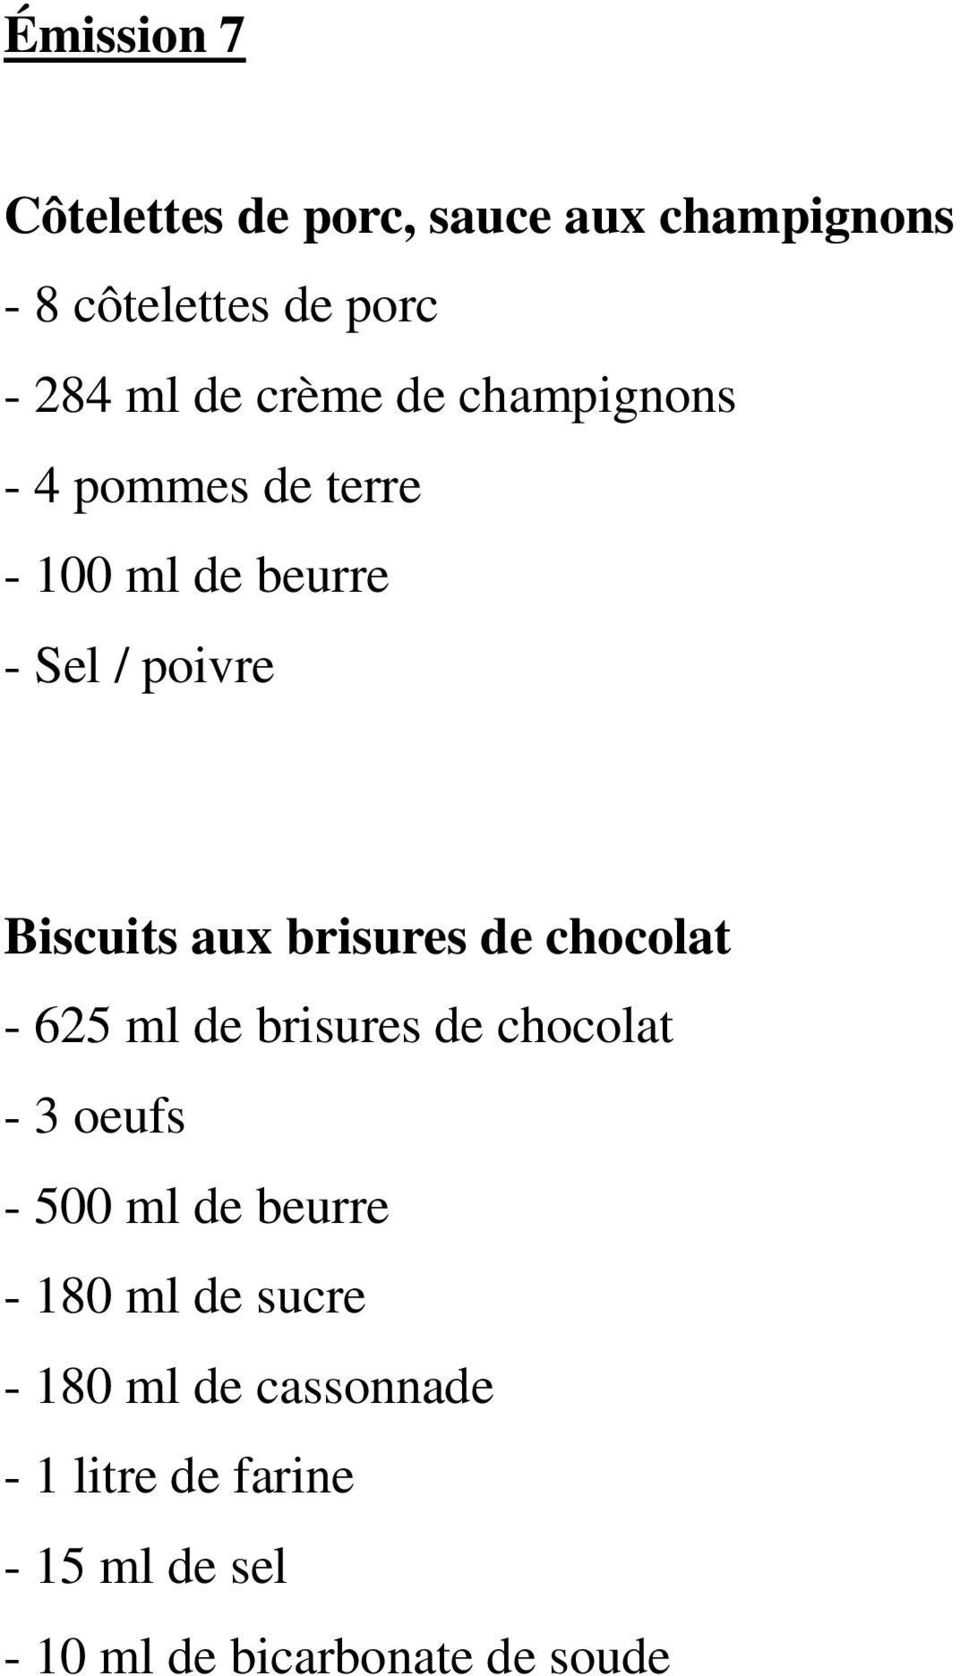 brisures de chocolat - 625 ml de brisures de chocolat - 3 oeufs - 500 ml de beurre - 180 ml